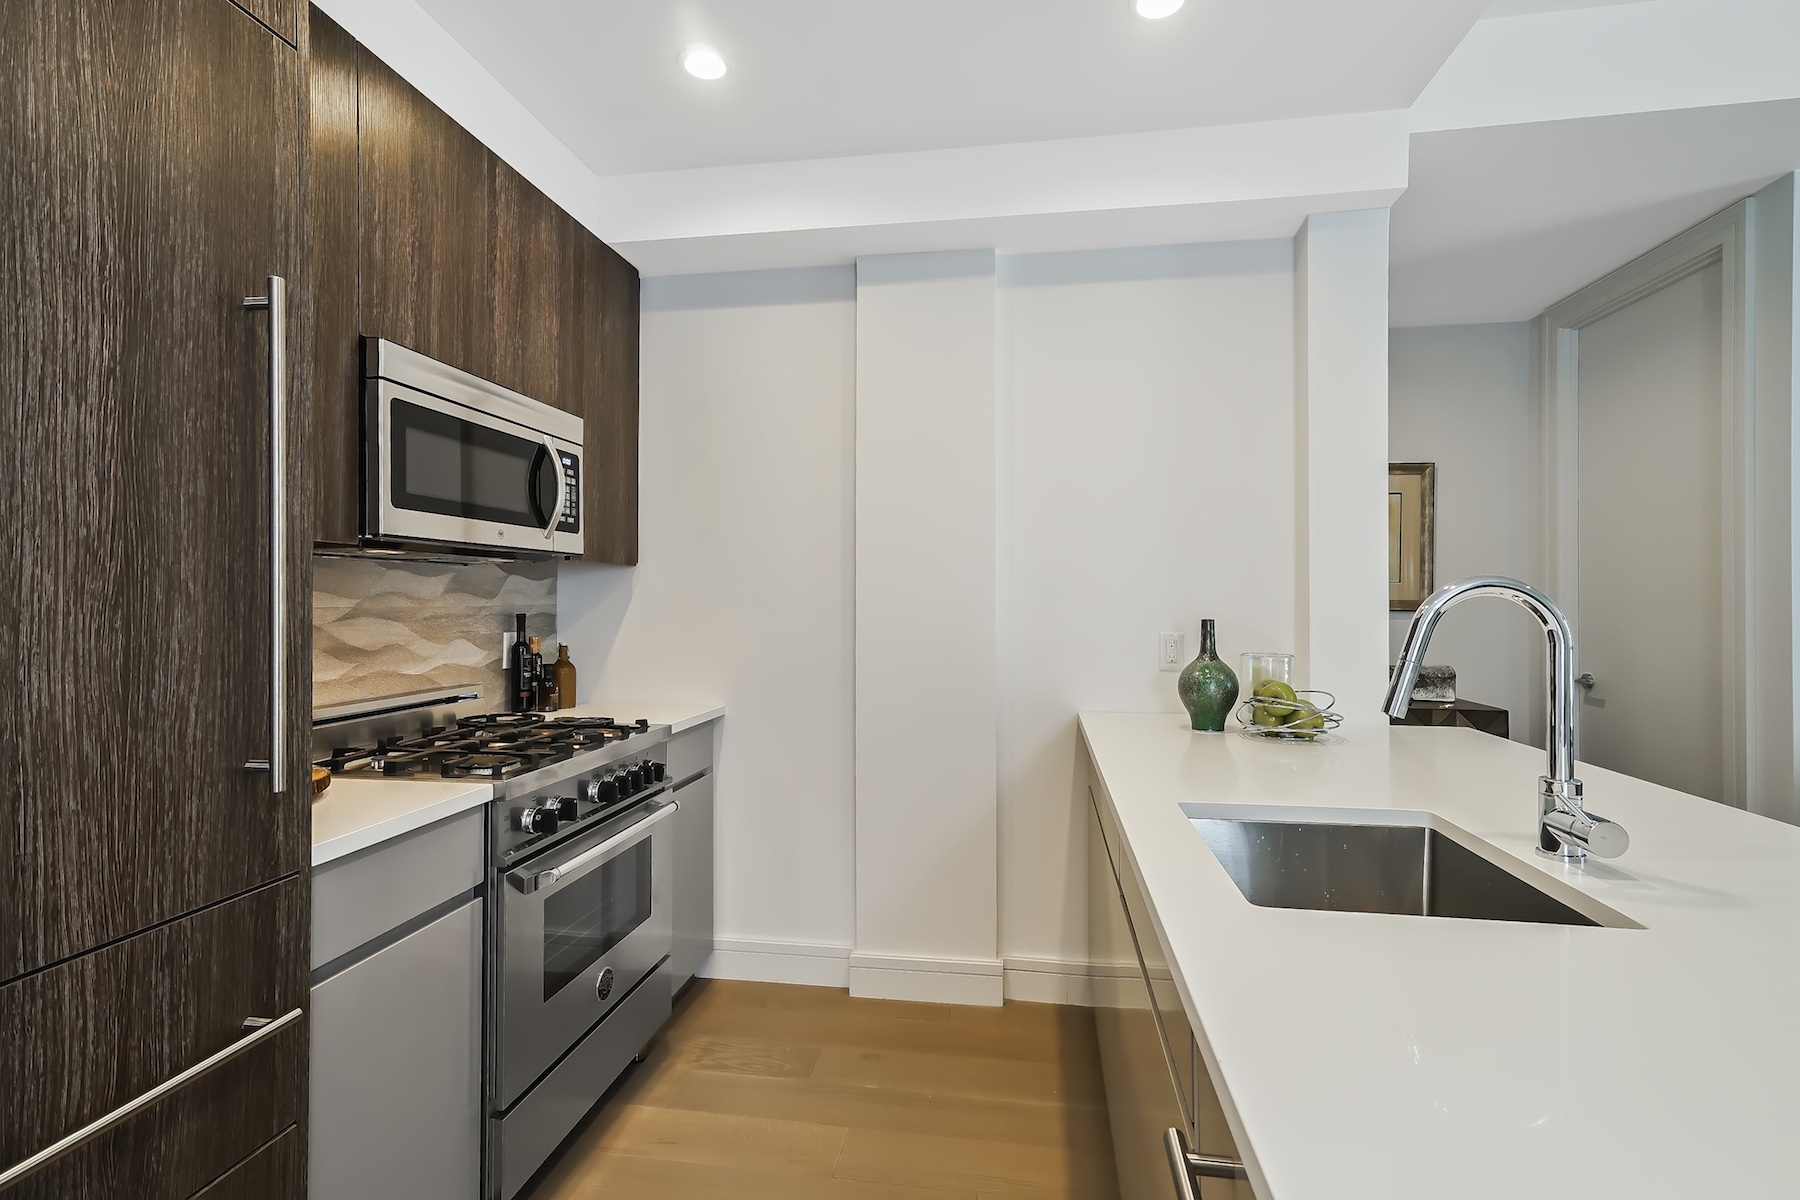 Additional photo for property listing at Stanton on Sixth 695 6th Avenue 2G Brooklyn, New York 11215 United States